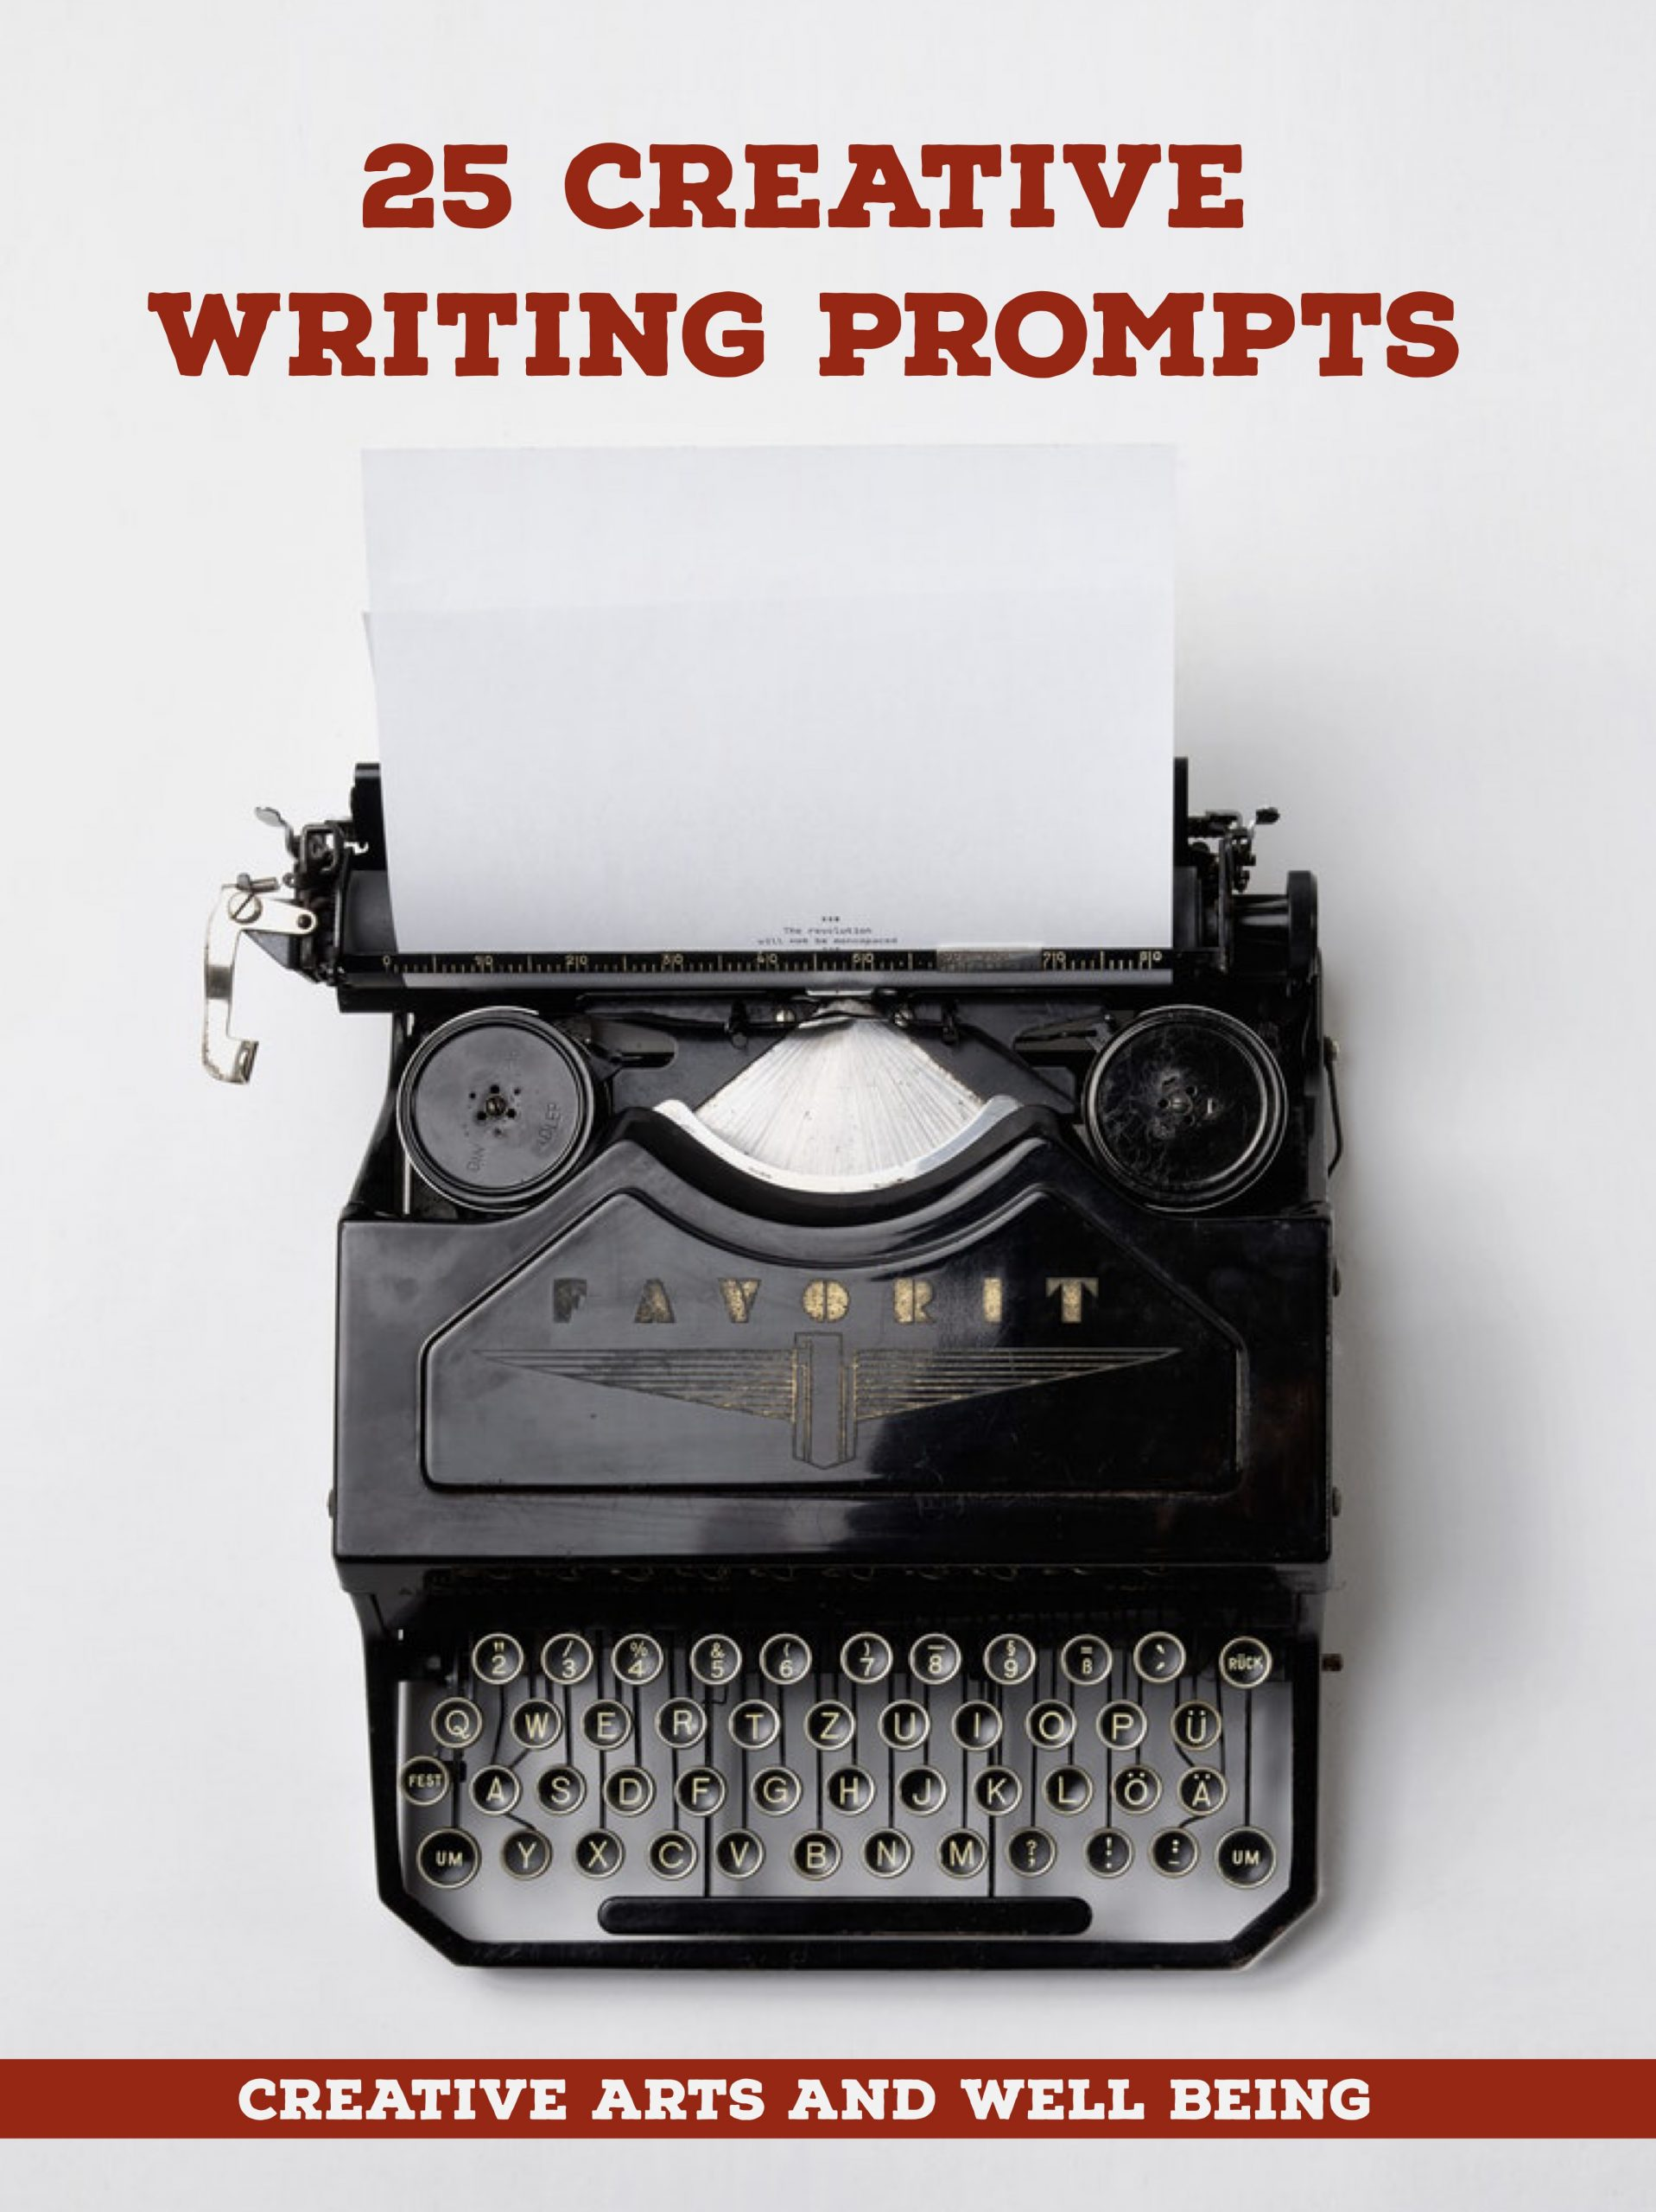 25 Creative Writing Prompts